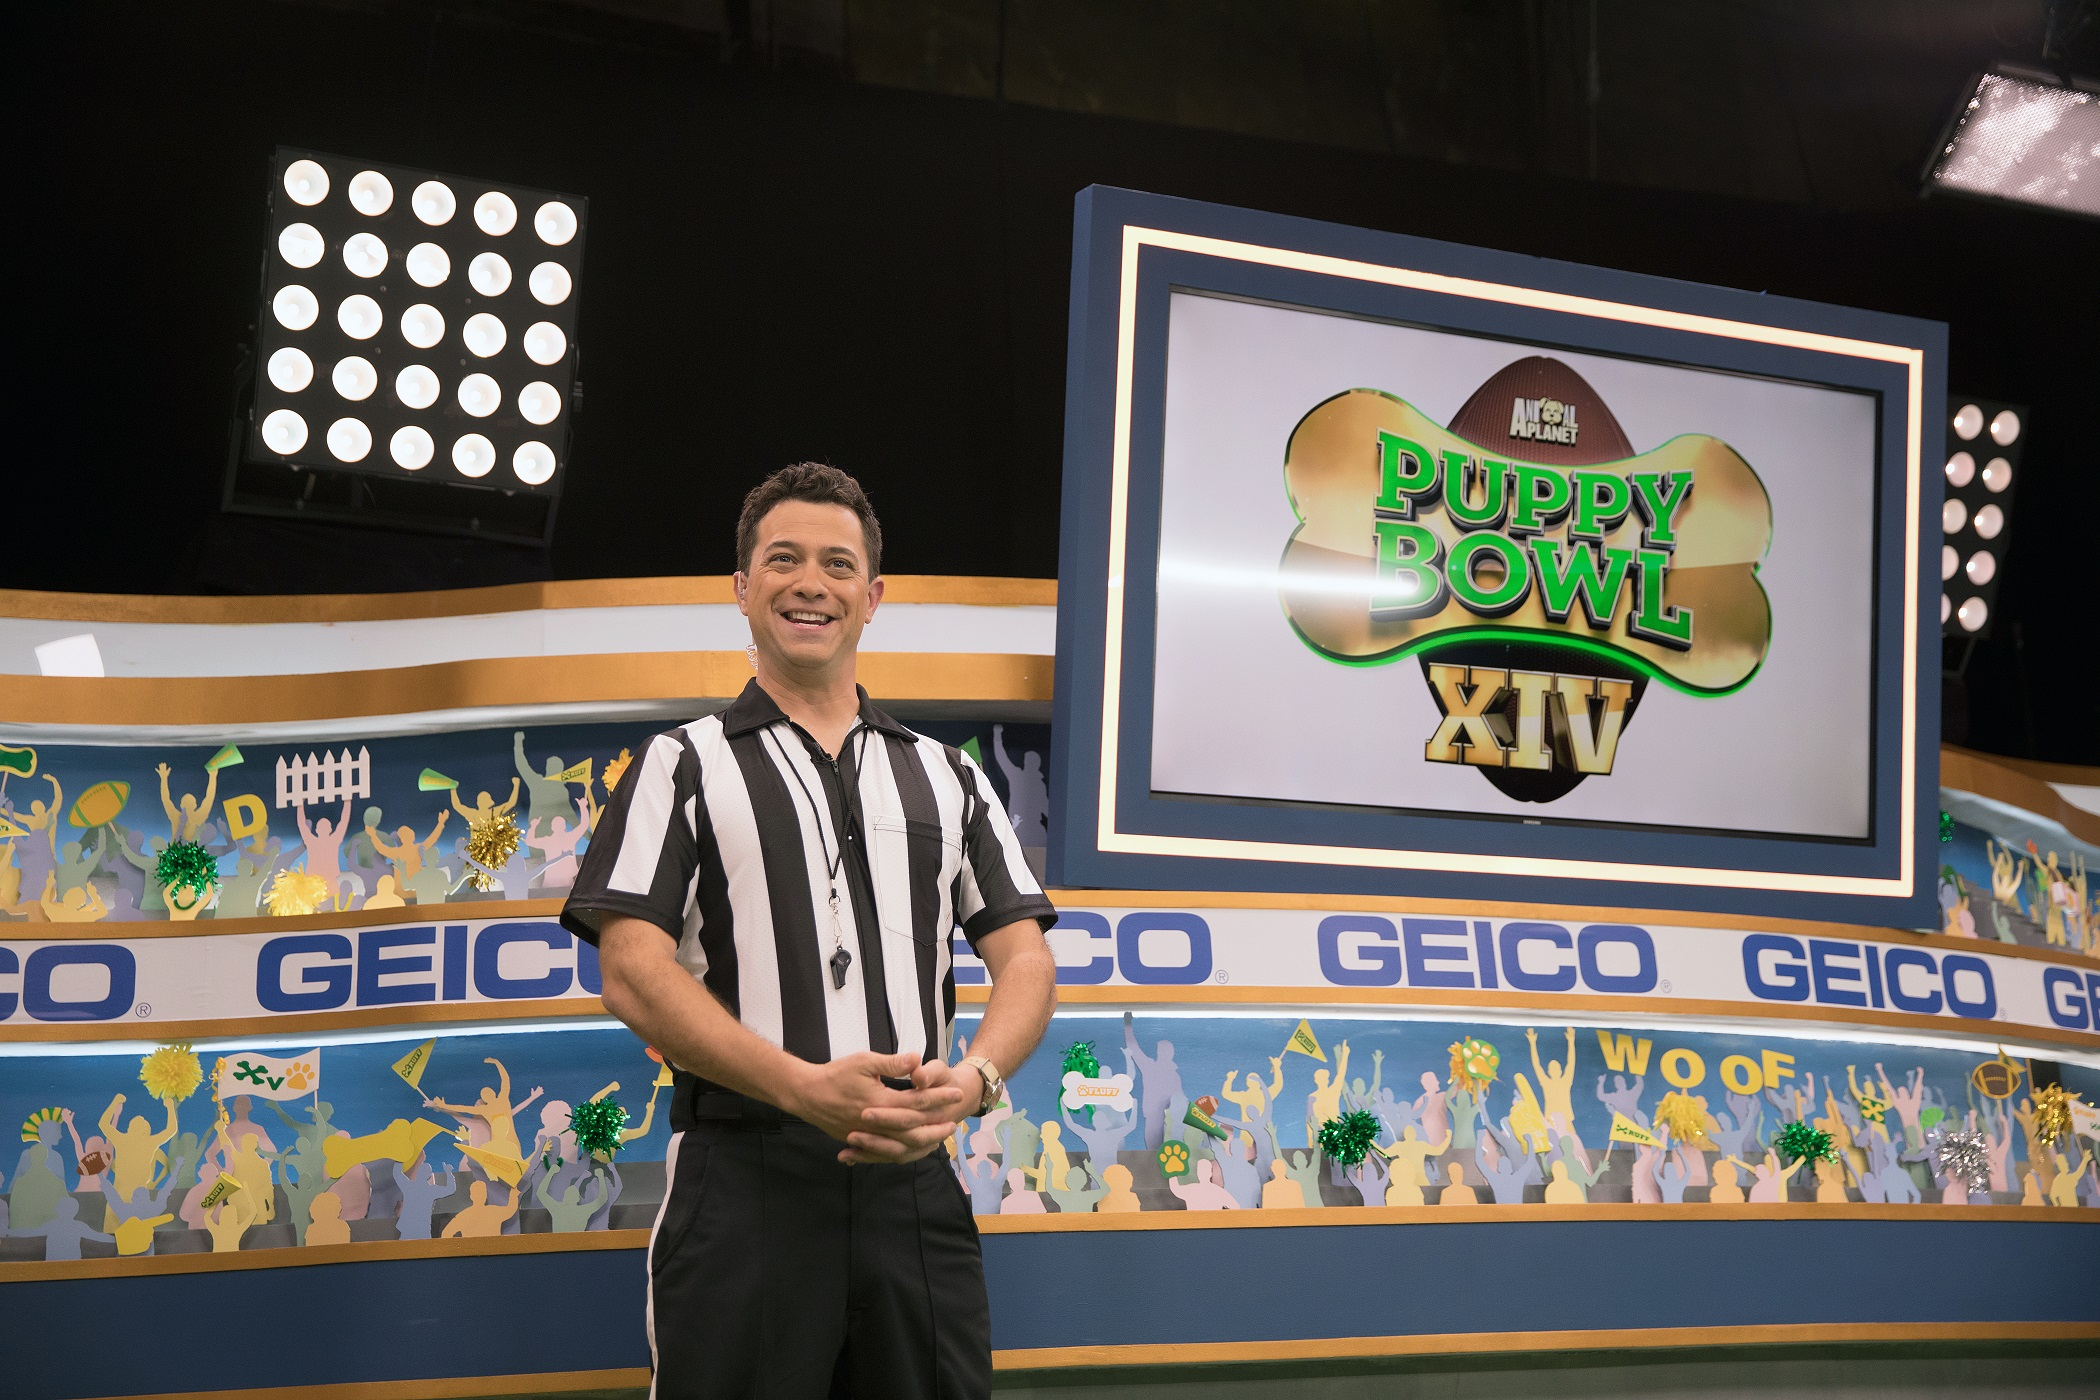 Puppy Bowl XIV Returns to Animal Planet Feb. 4